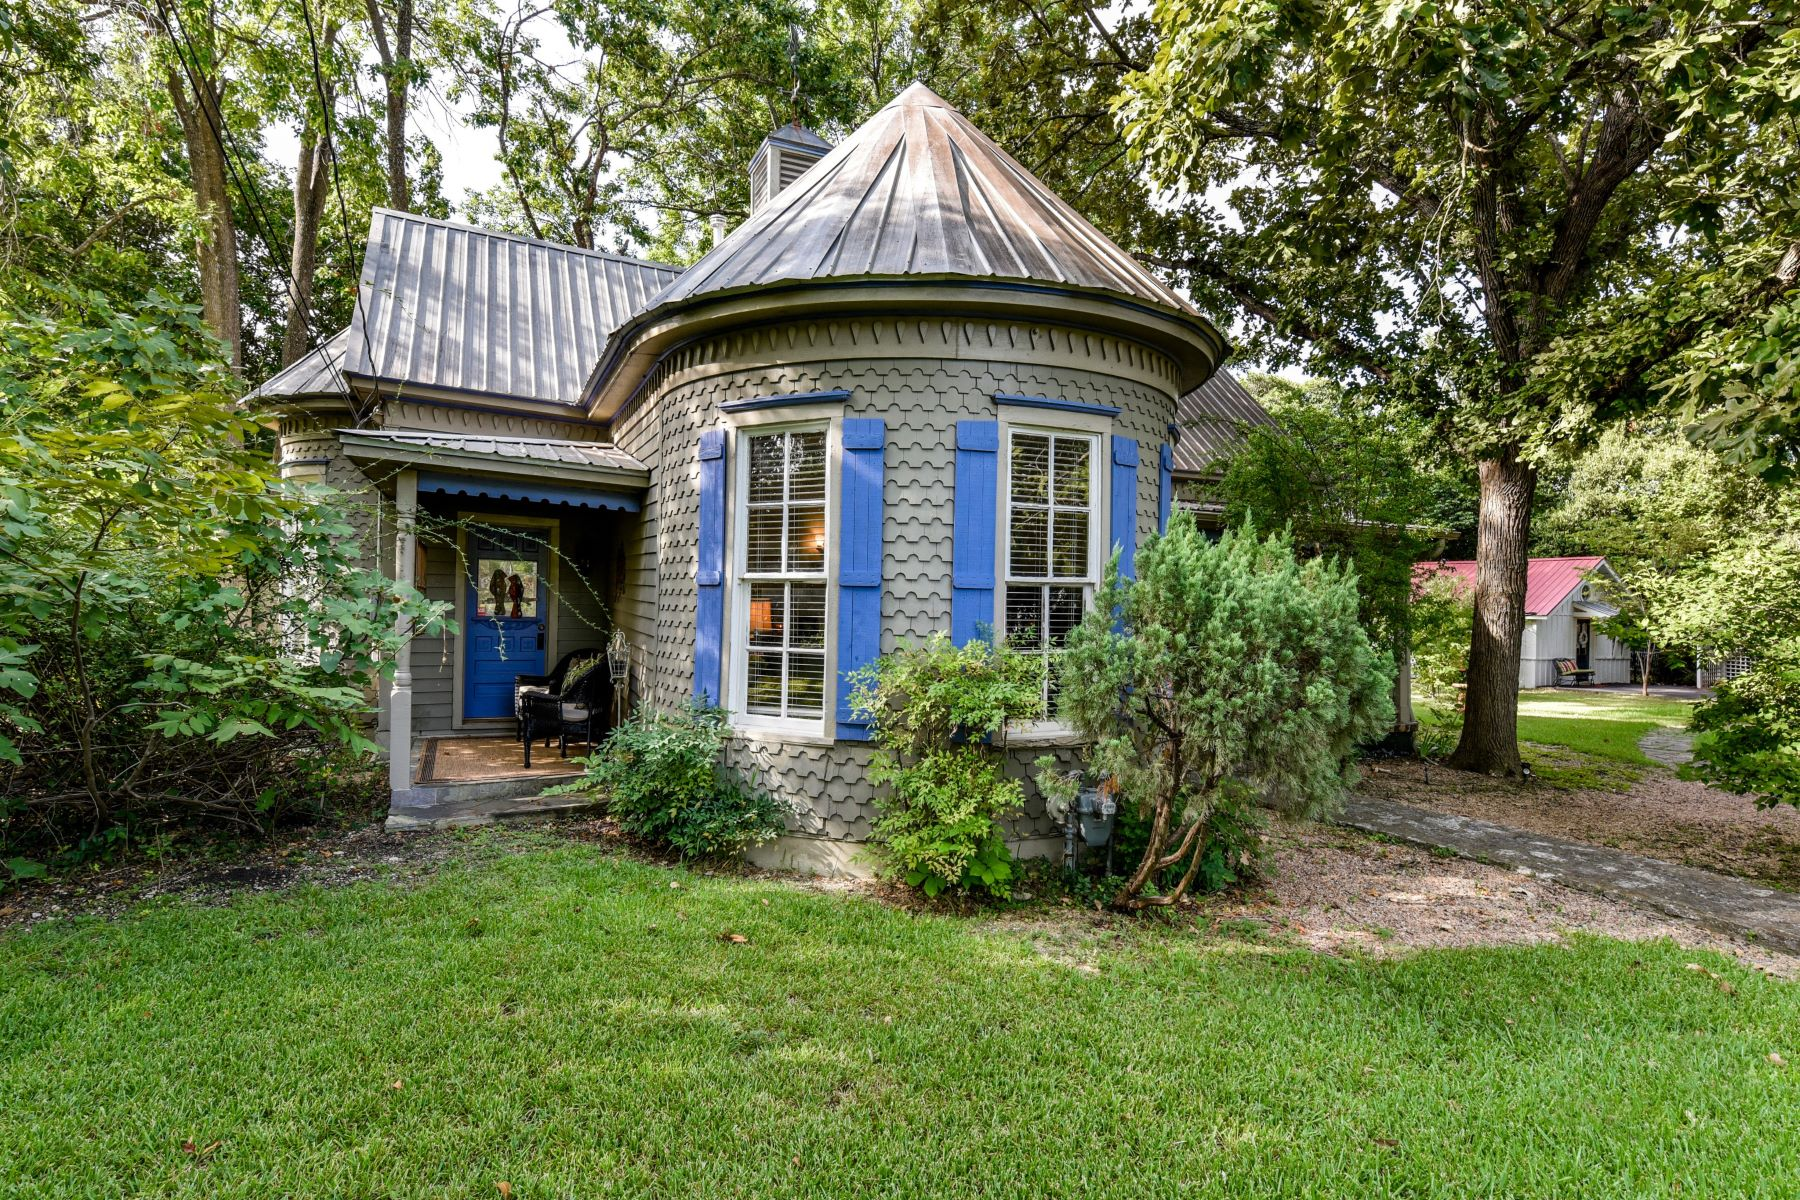 Single Family Homes for Sale at 1202 East 15th Street, Georgetown, TX 78626 1202 East 15th Street Georgetown, Texas 78626 United States